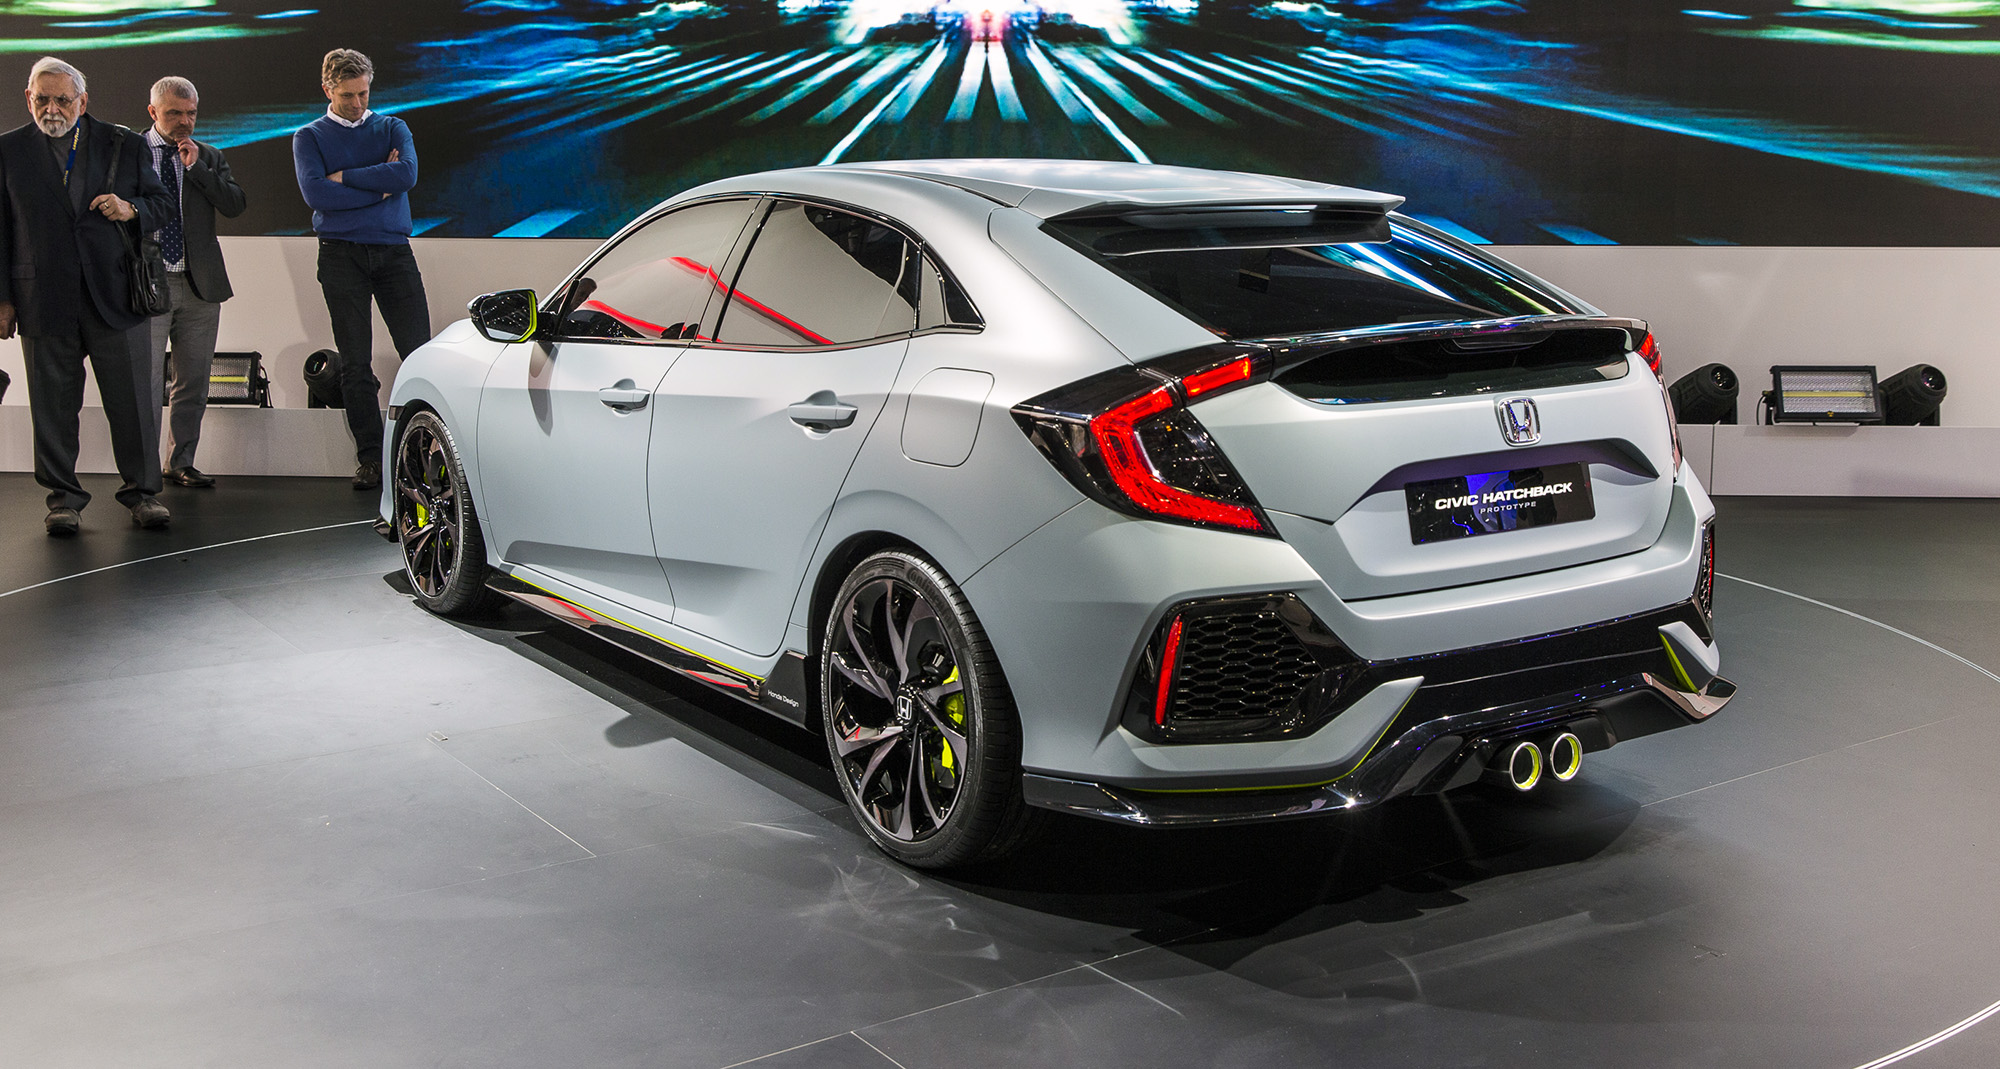 2017 honda civic hatchback revealed in patent images for Honda civic coupe hatchback